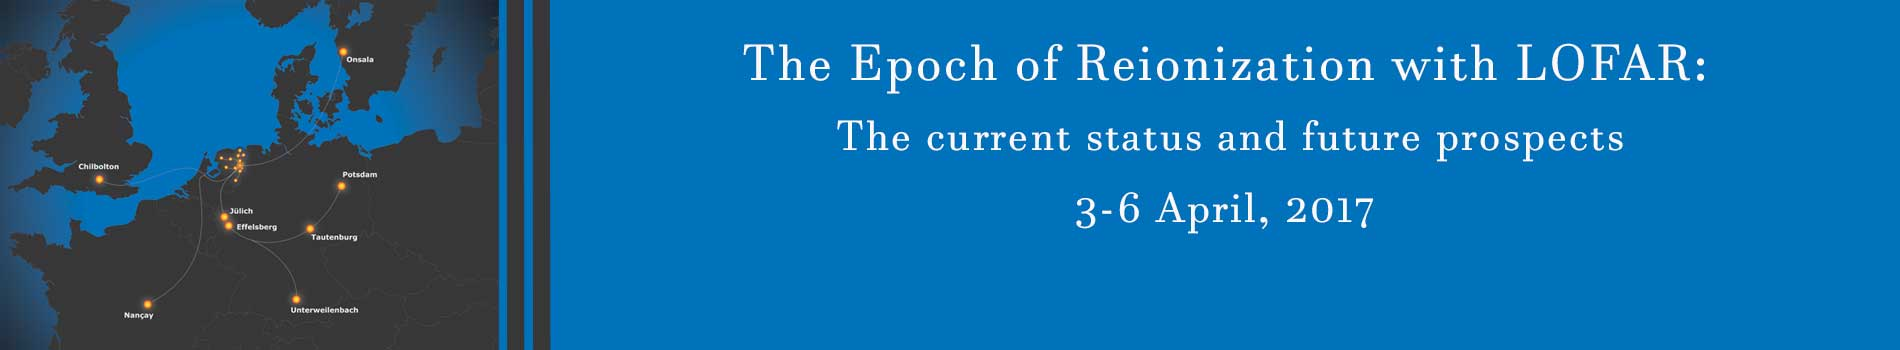 The Epoch of Reionization with LOFAR: The current status and future prospects 2017 banner